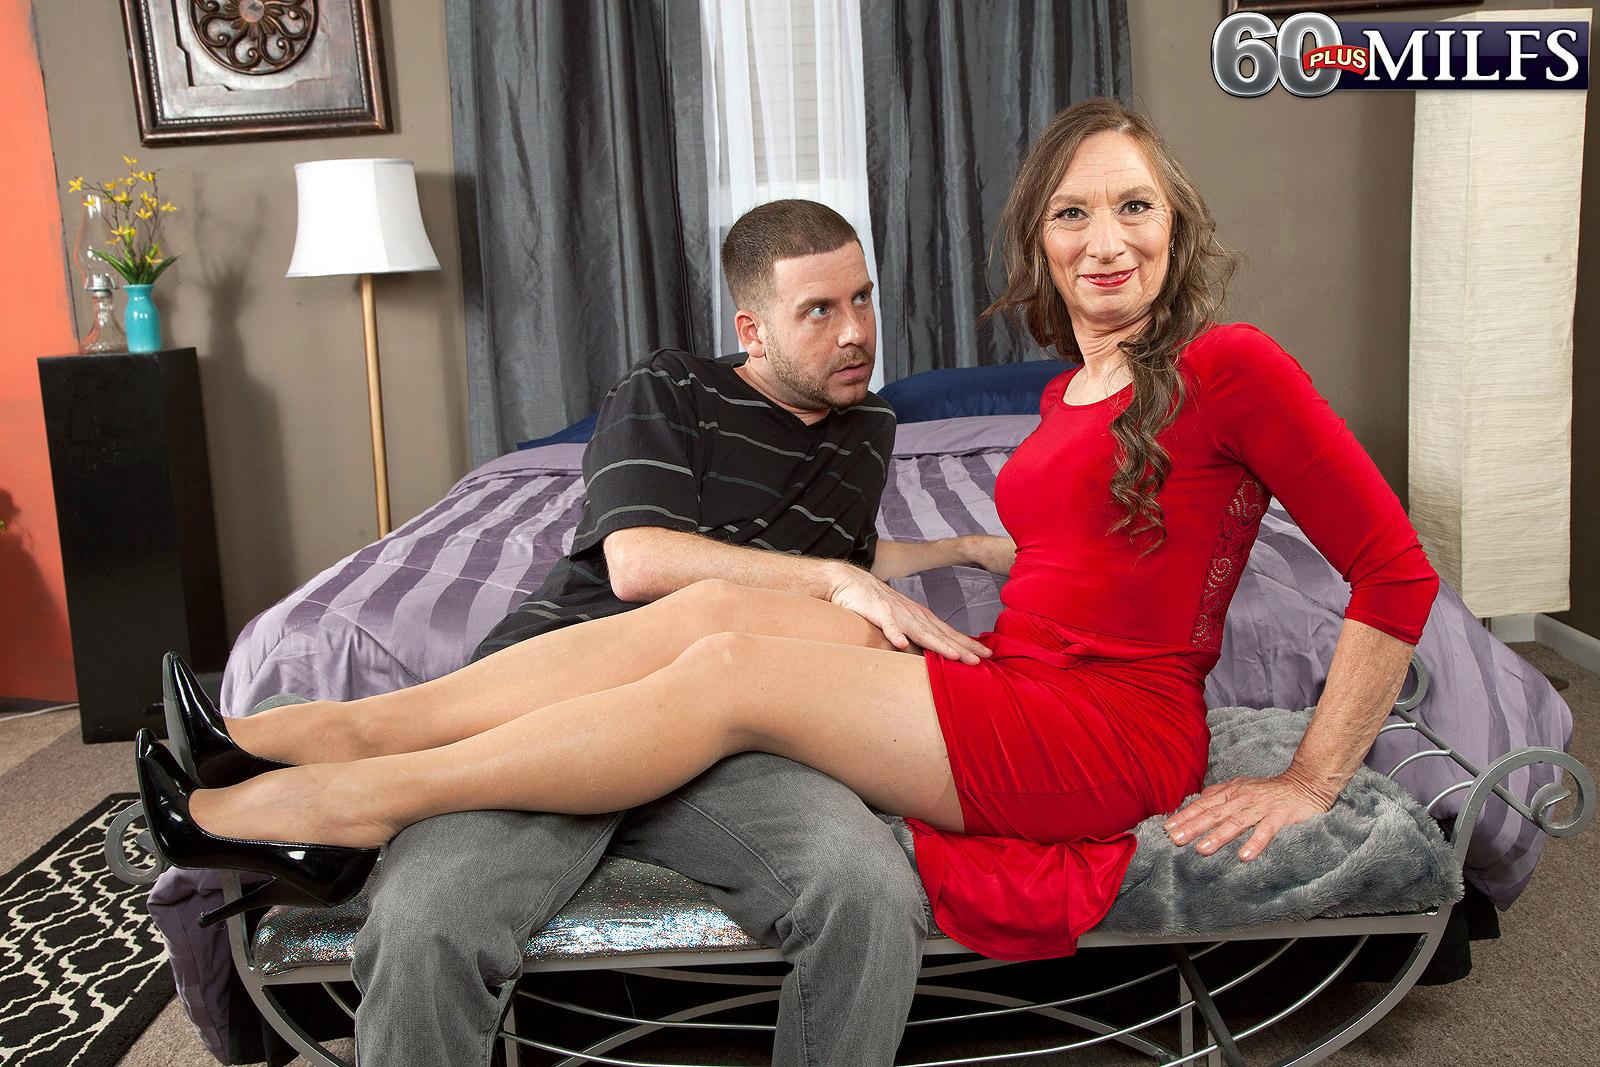 Stockings and high heel garbed granny Mona readying for sex with junior dude